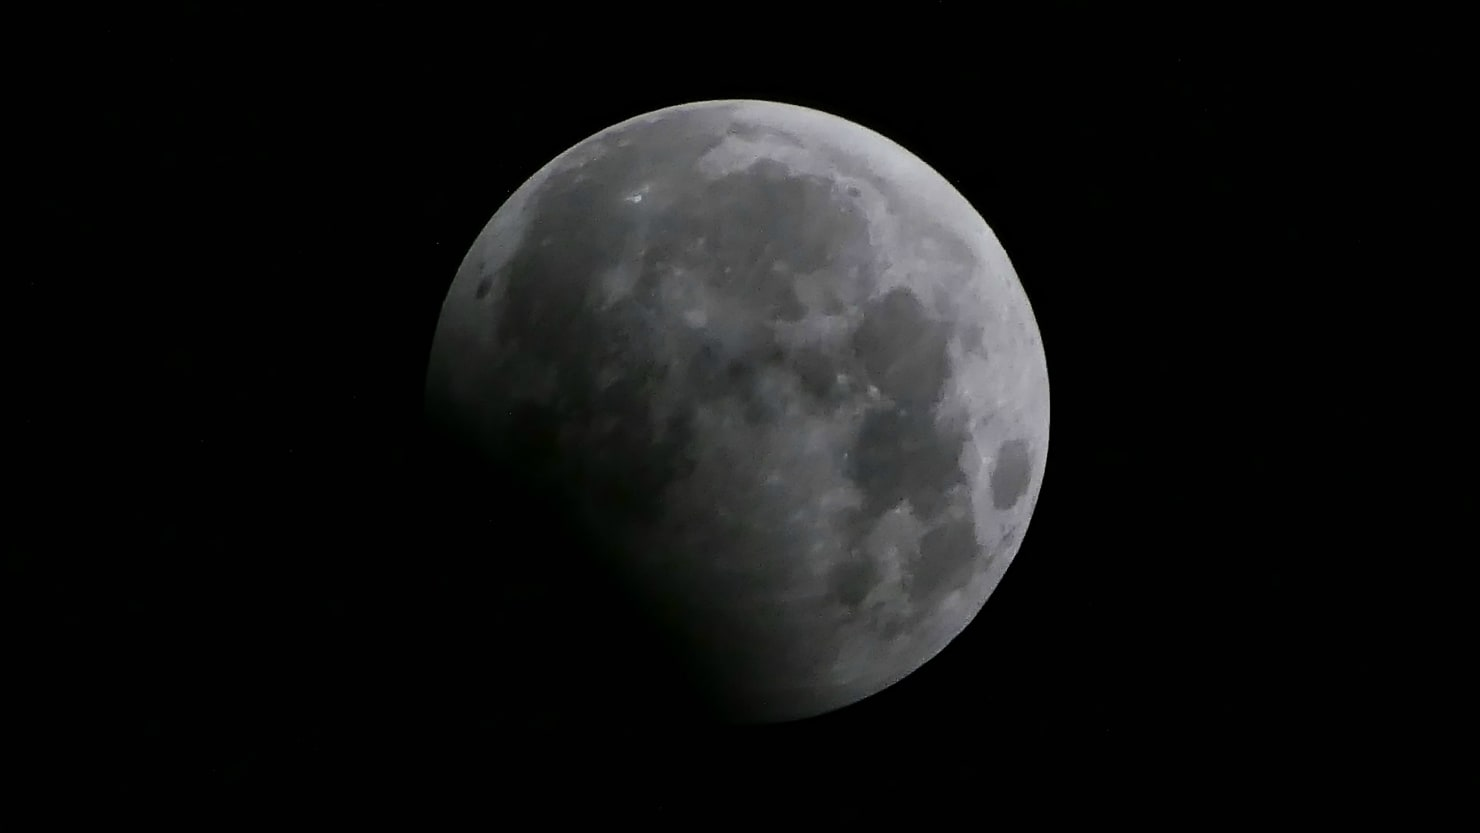 2016: The Year We Began Mining the Moon